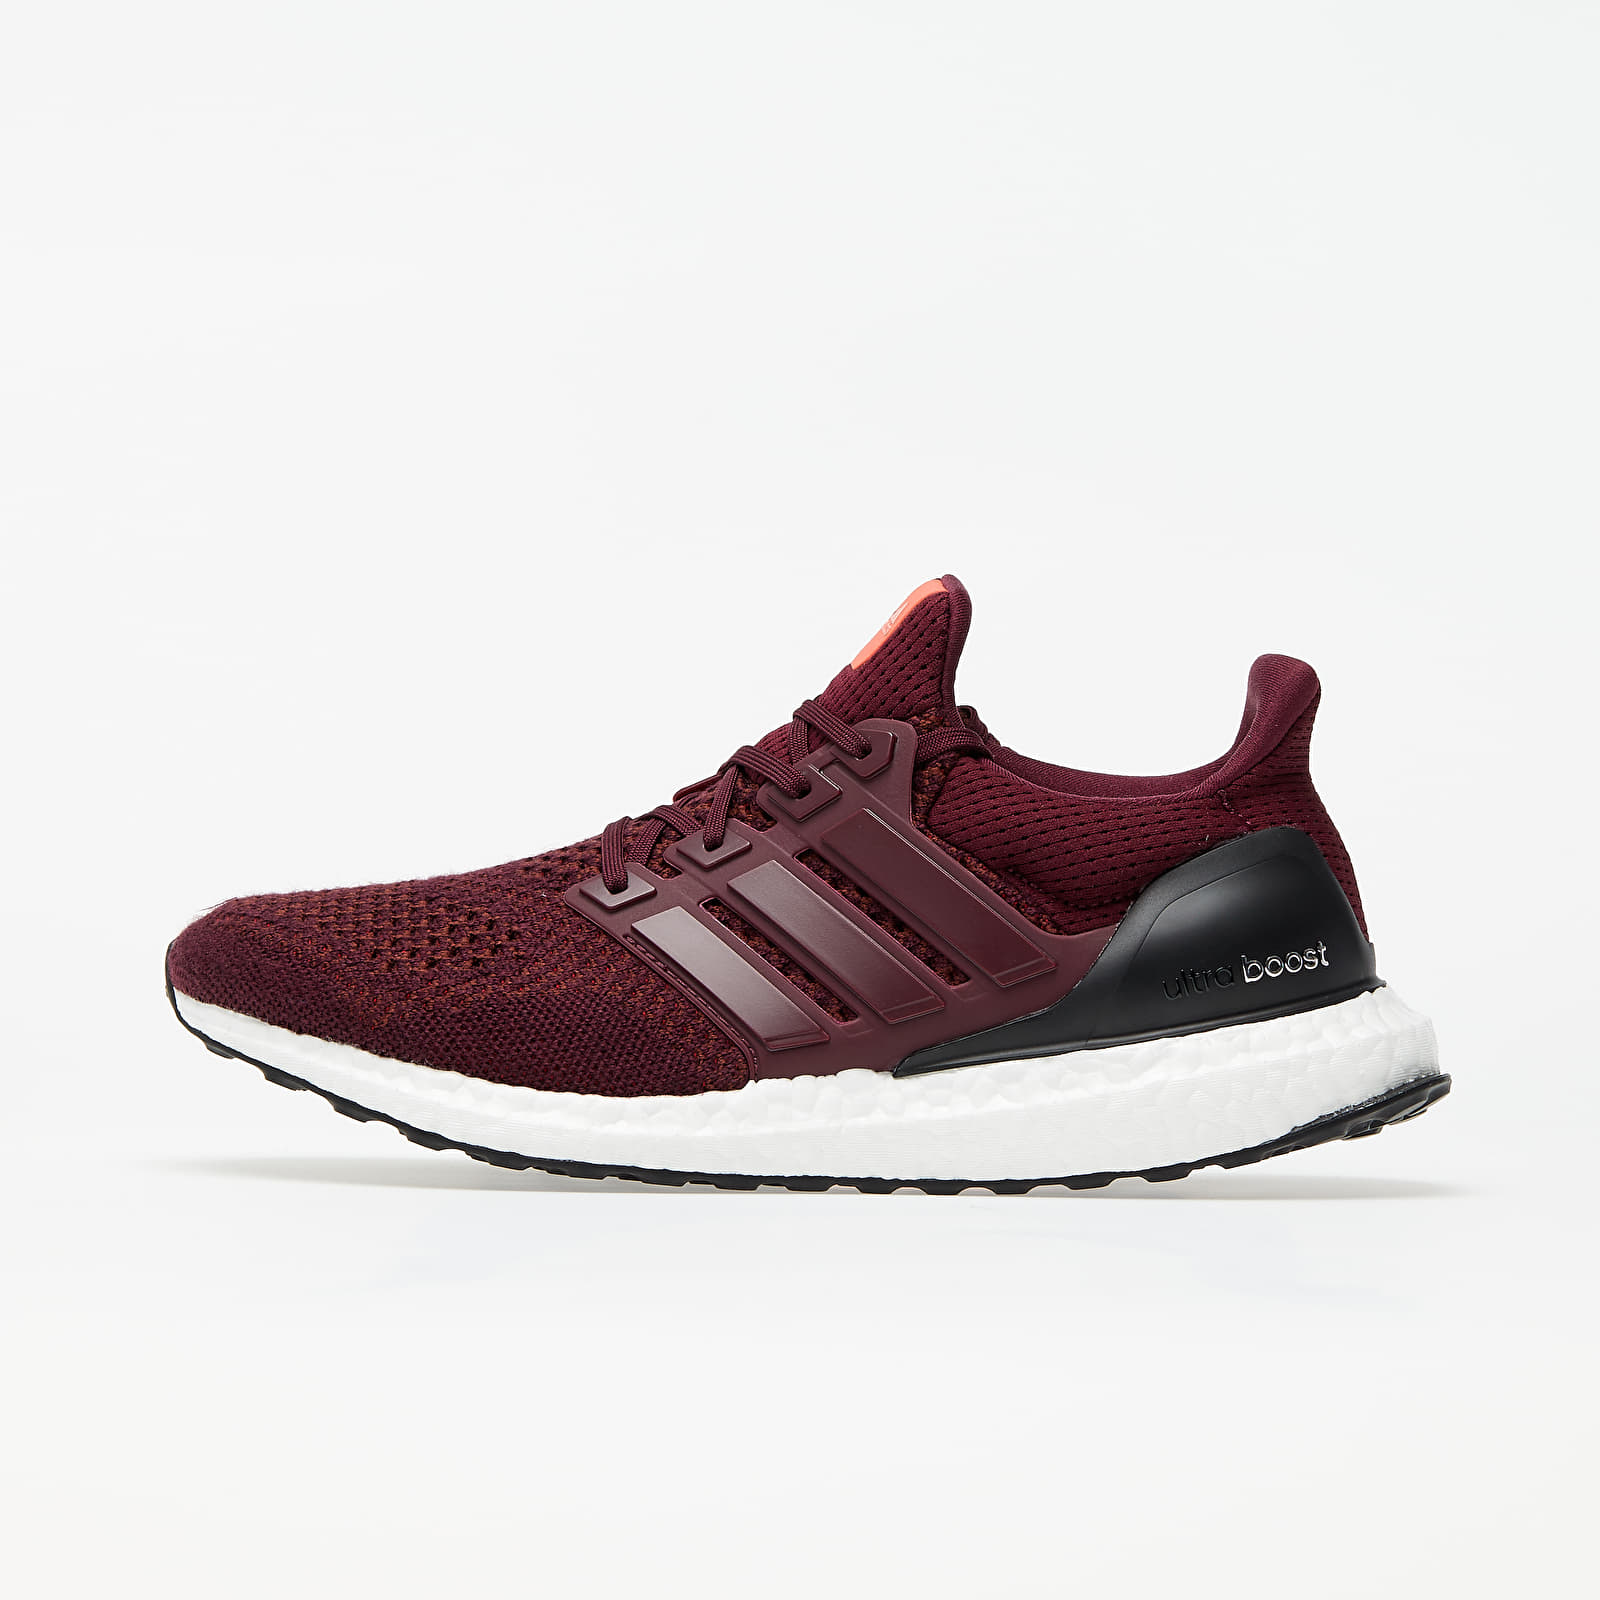 Men's shoes adidas UltraBOOST Ltd. Maroon/ Maroon/ Core Black